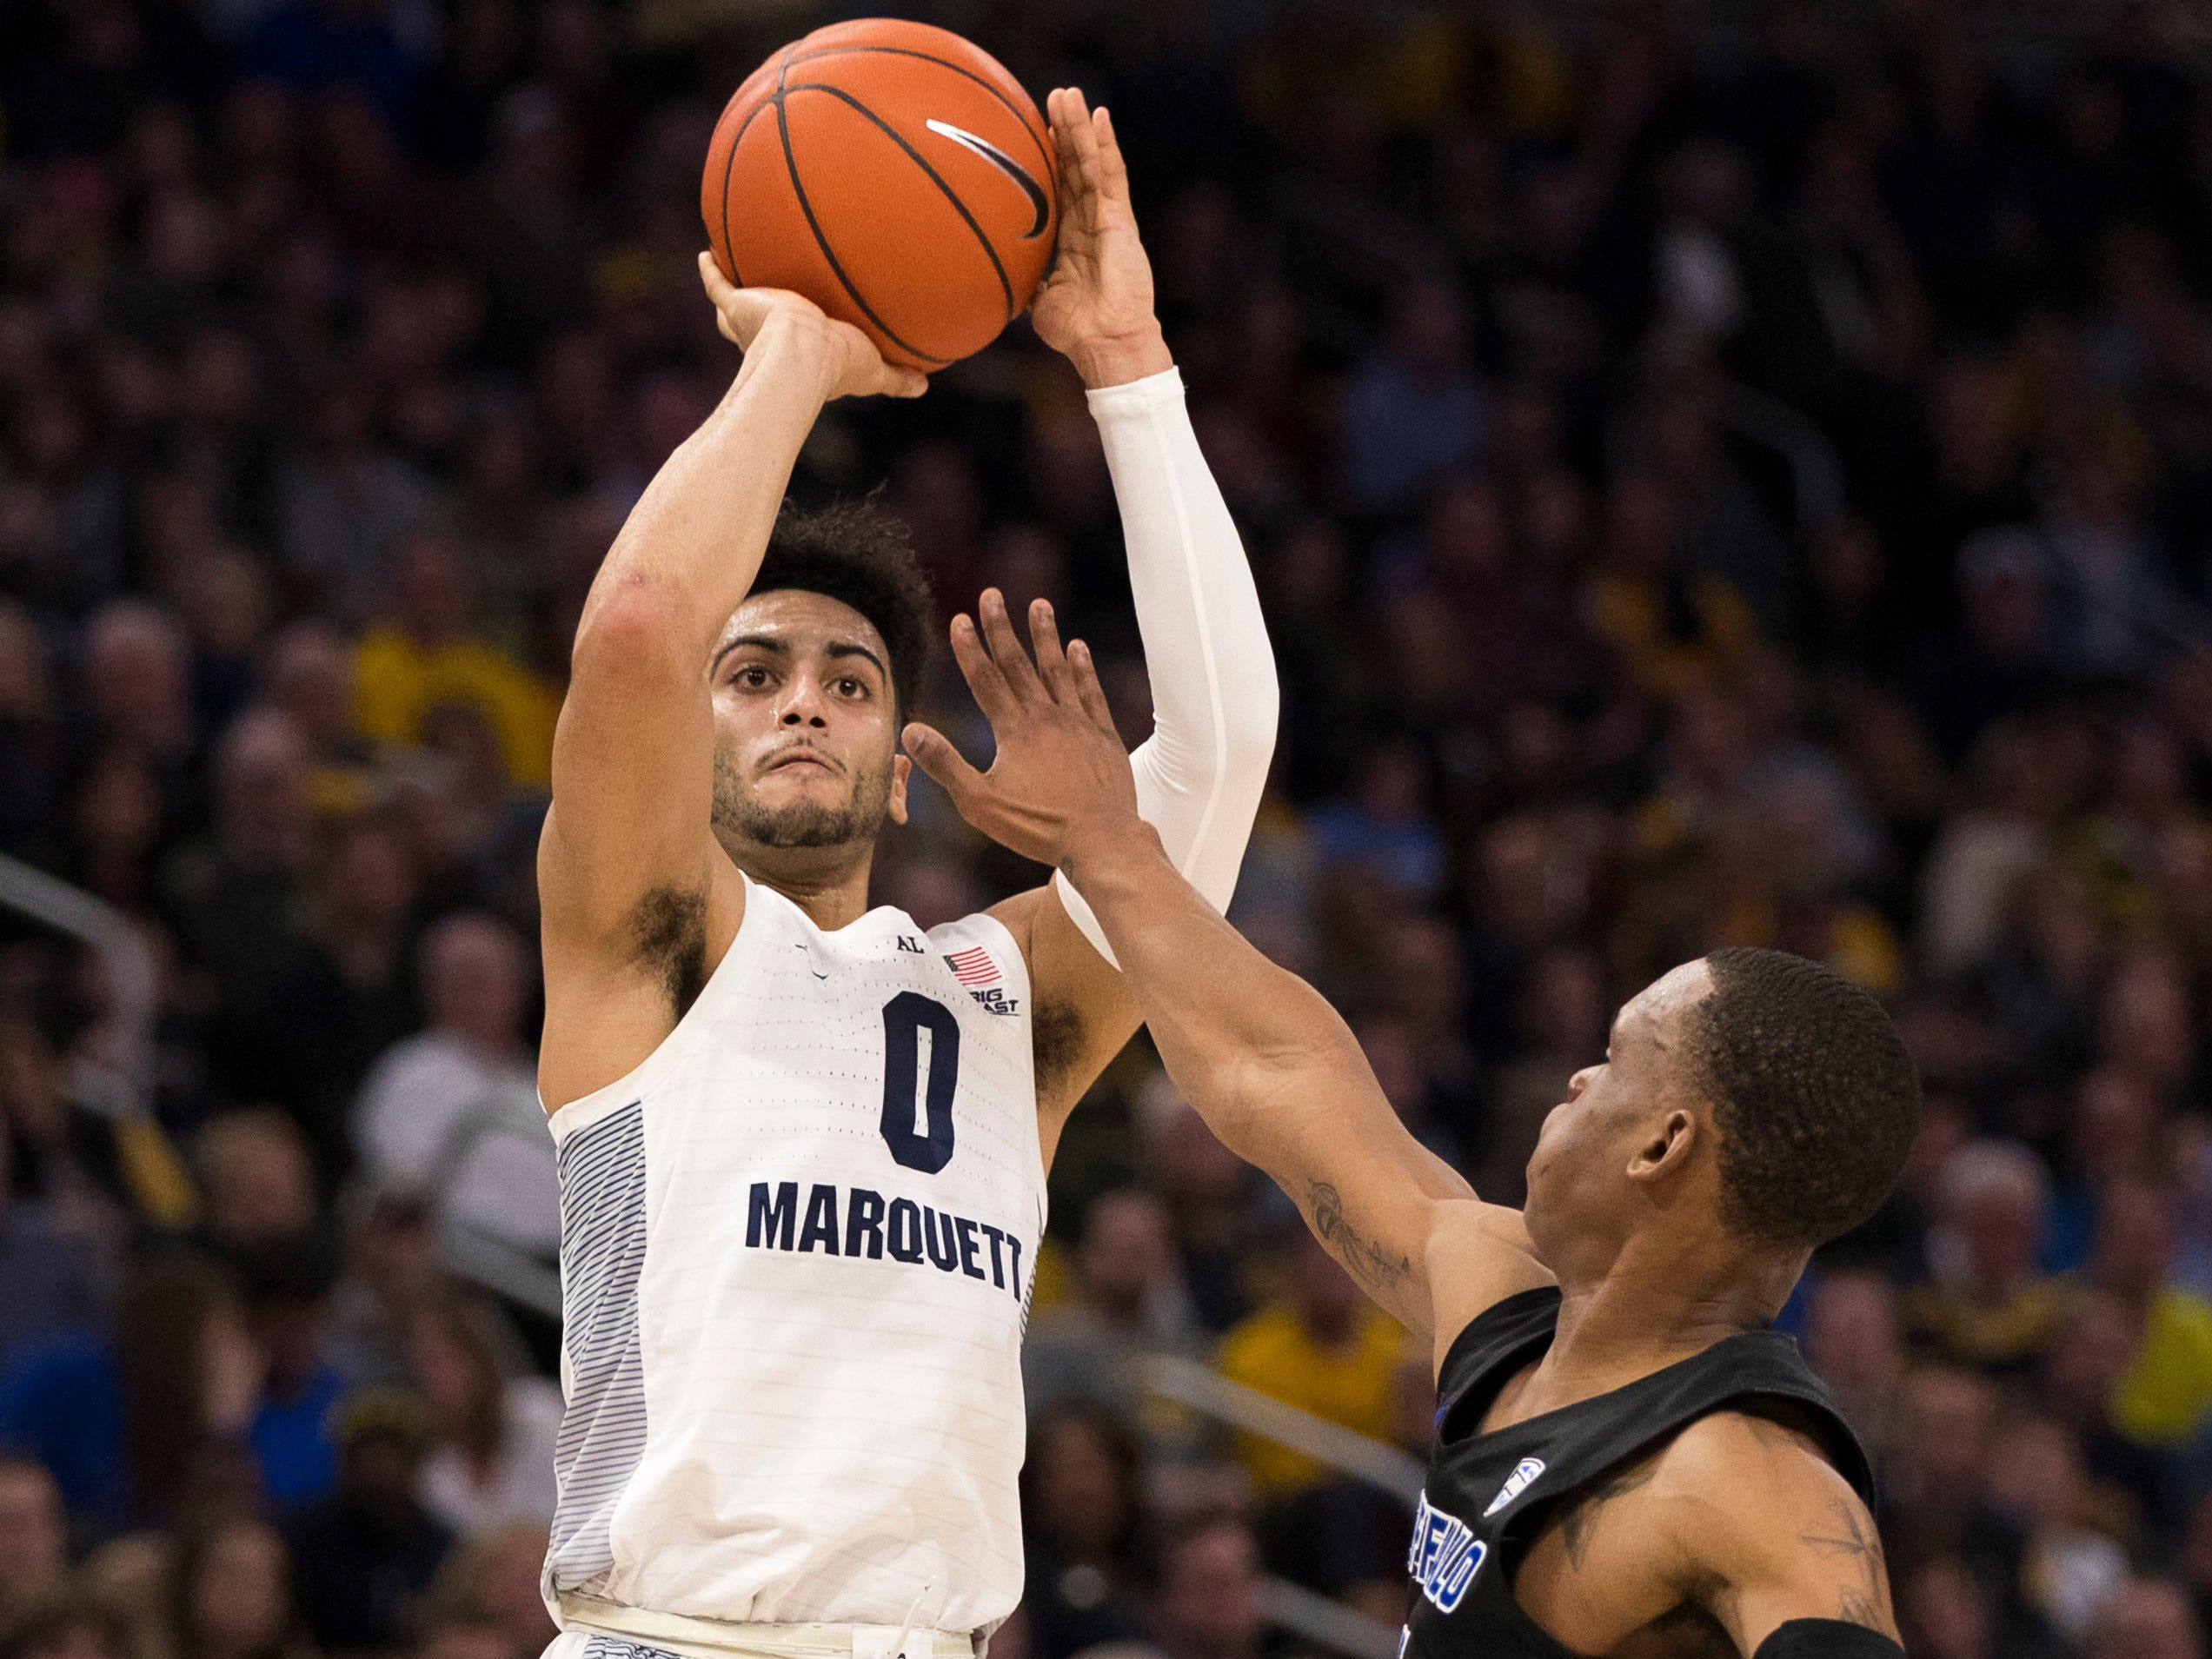 Golden Eagles guard Markus Howard launches a three-pointer against Buffalo in the second half on Friday night. Howard hit 8 of 10 three-pointers after the break as he scored 40 of his 45 points after halftime.